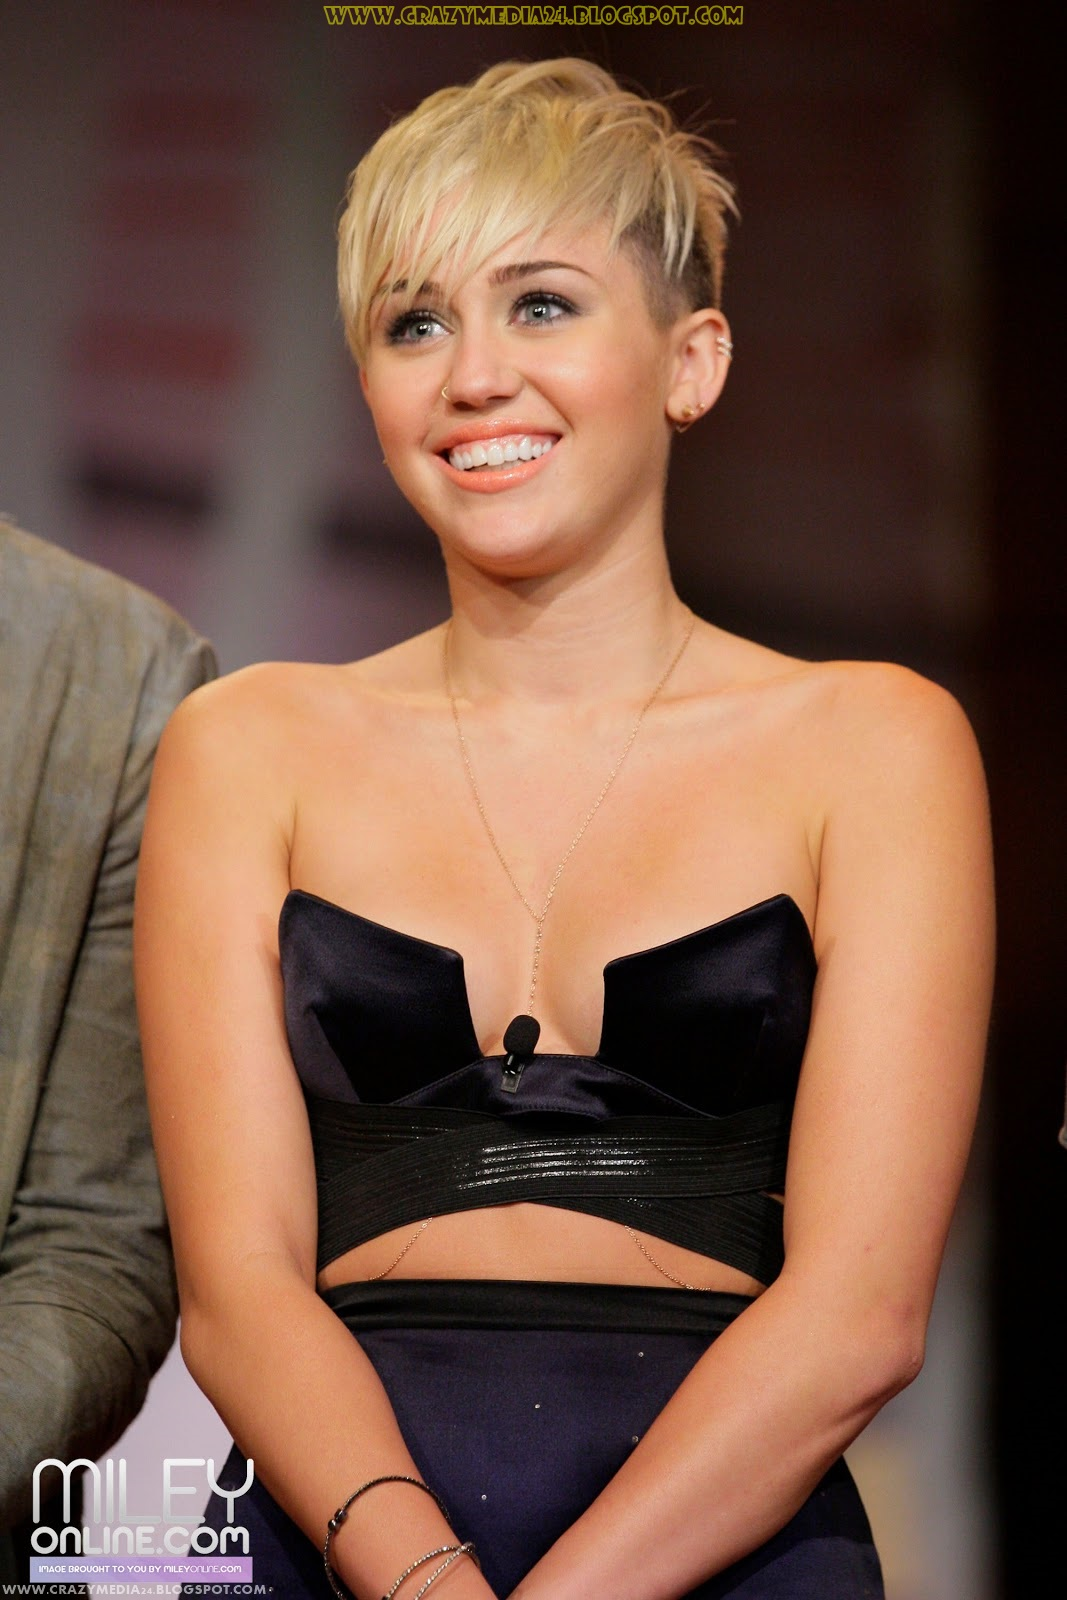 pictures of miley cyru...